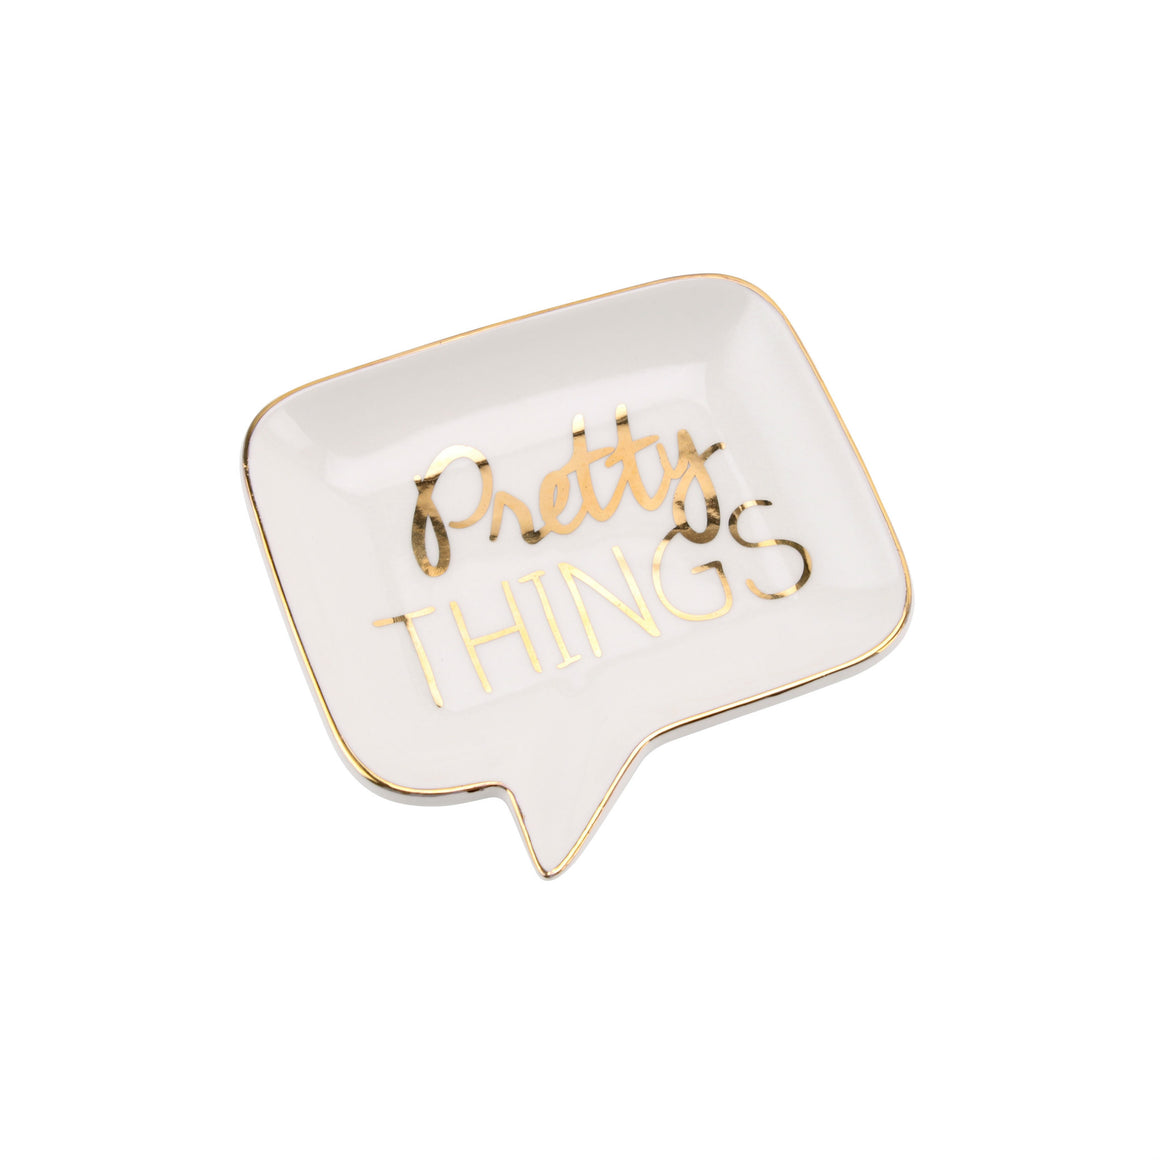 'Pretty Things' Speech Bubble Ceramic Jewellery Dish - The Love Trees